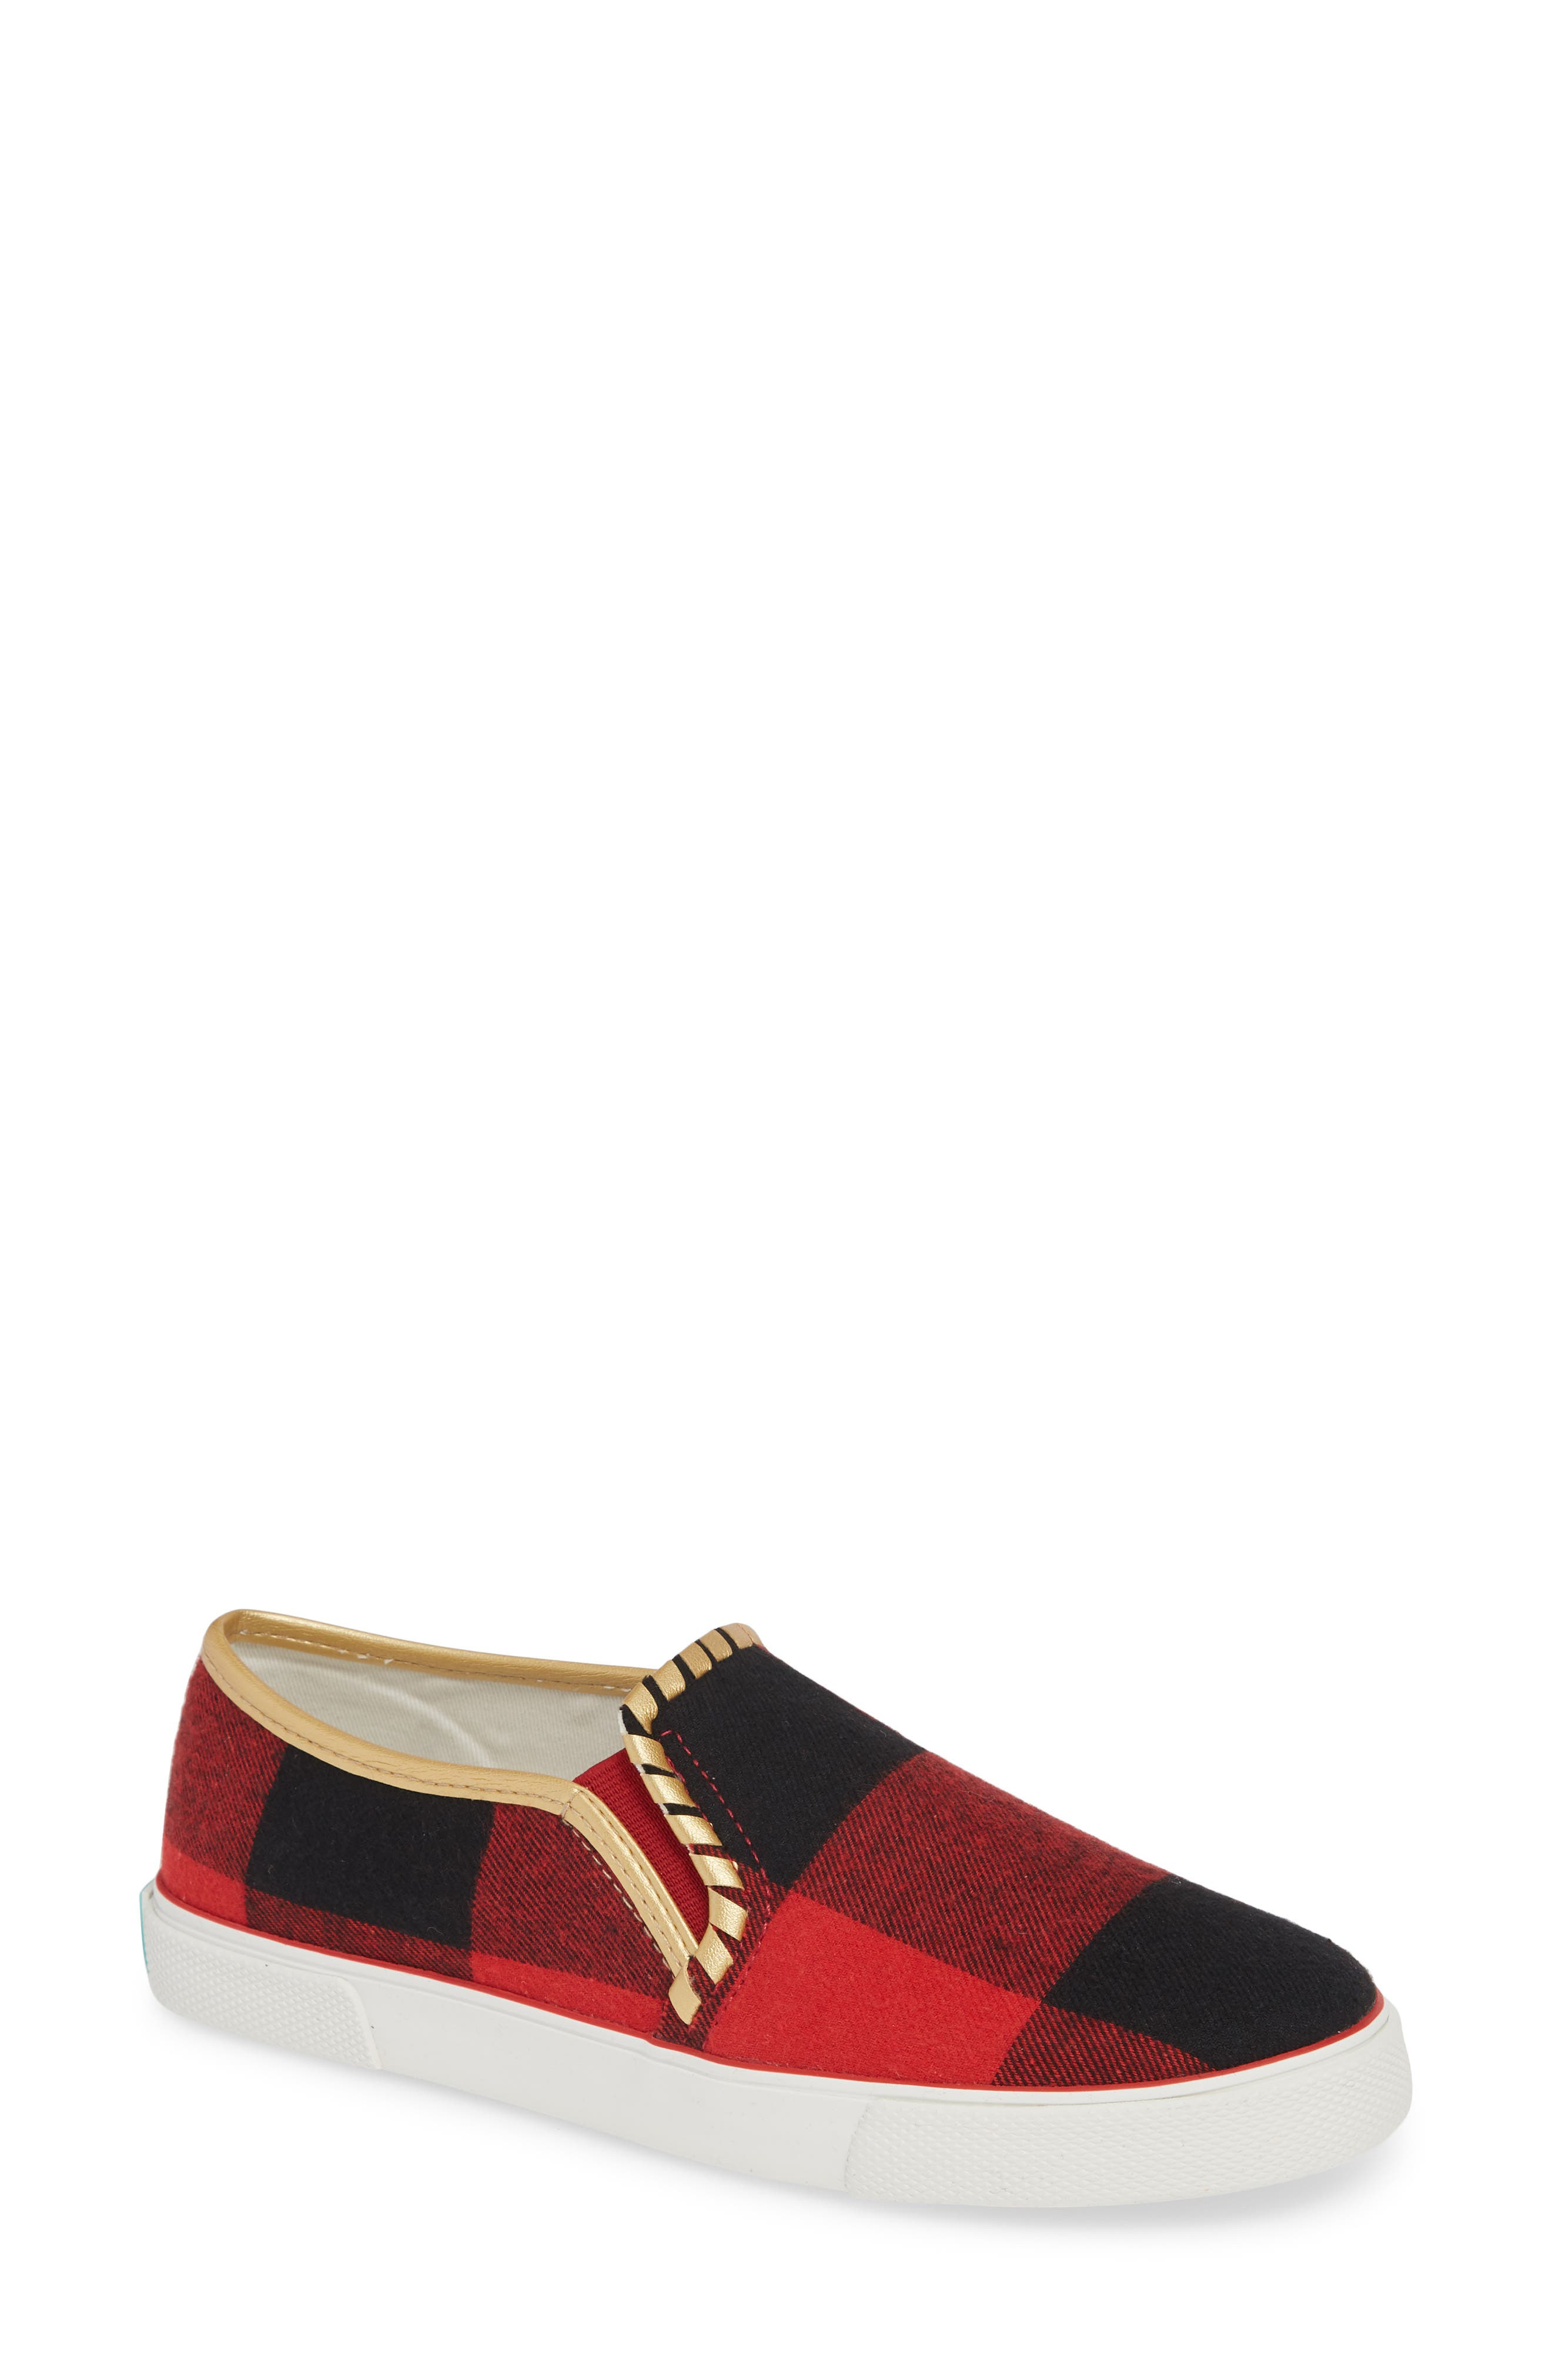 Brynne Slip-On Sneaker,                             Main thumbnail 1, color,                             RED/ BLACK FABRIC